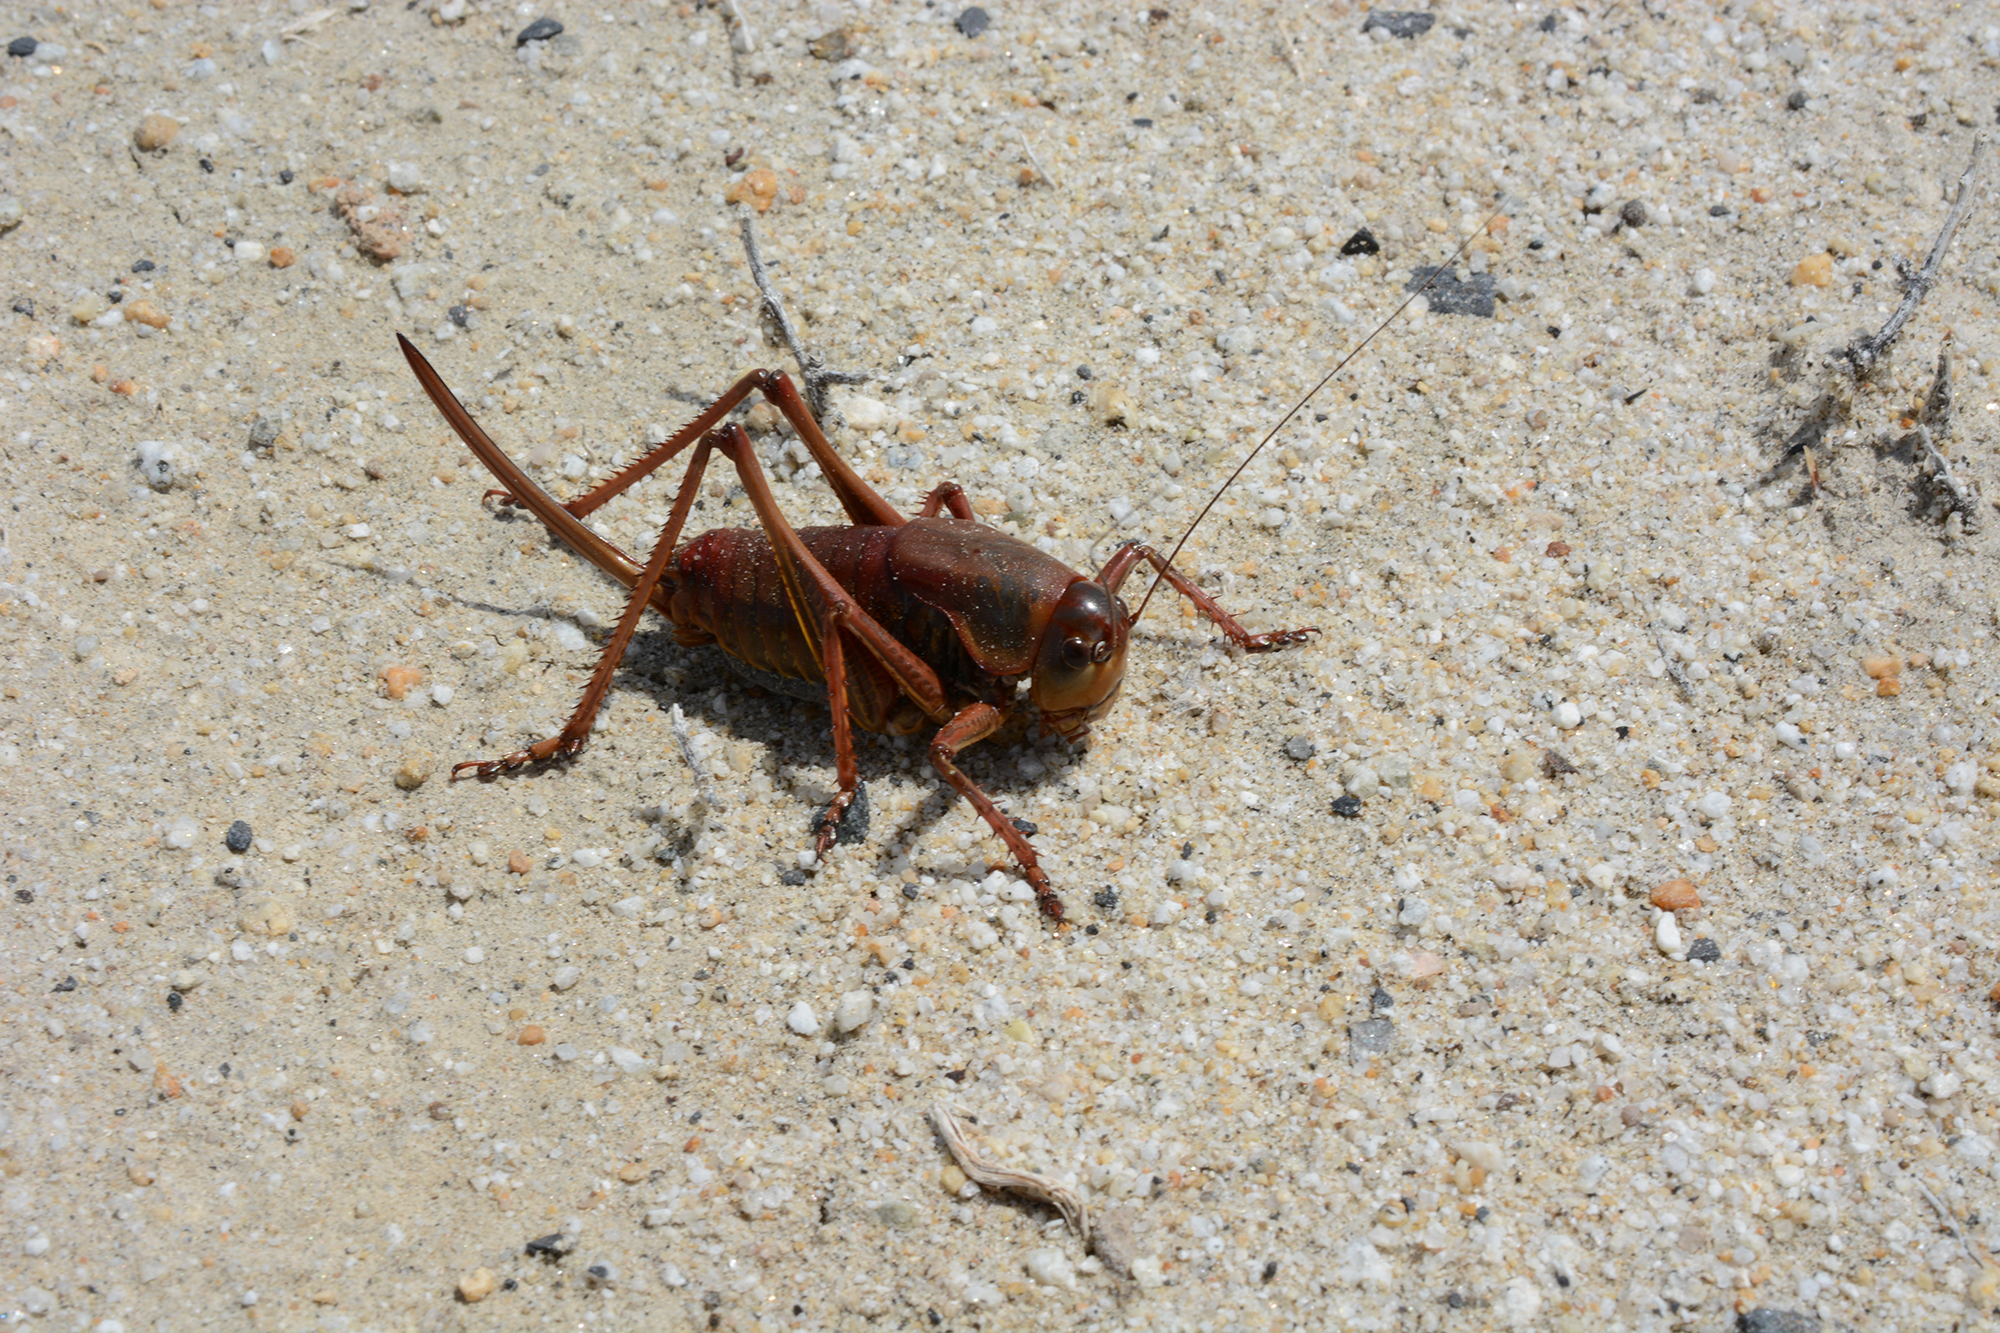 Report Mormon cricket sightings or infestations to the Entomology Laboratory.